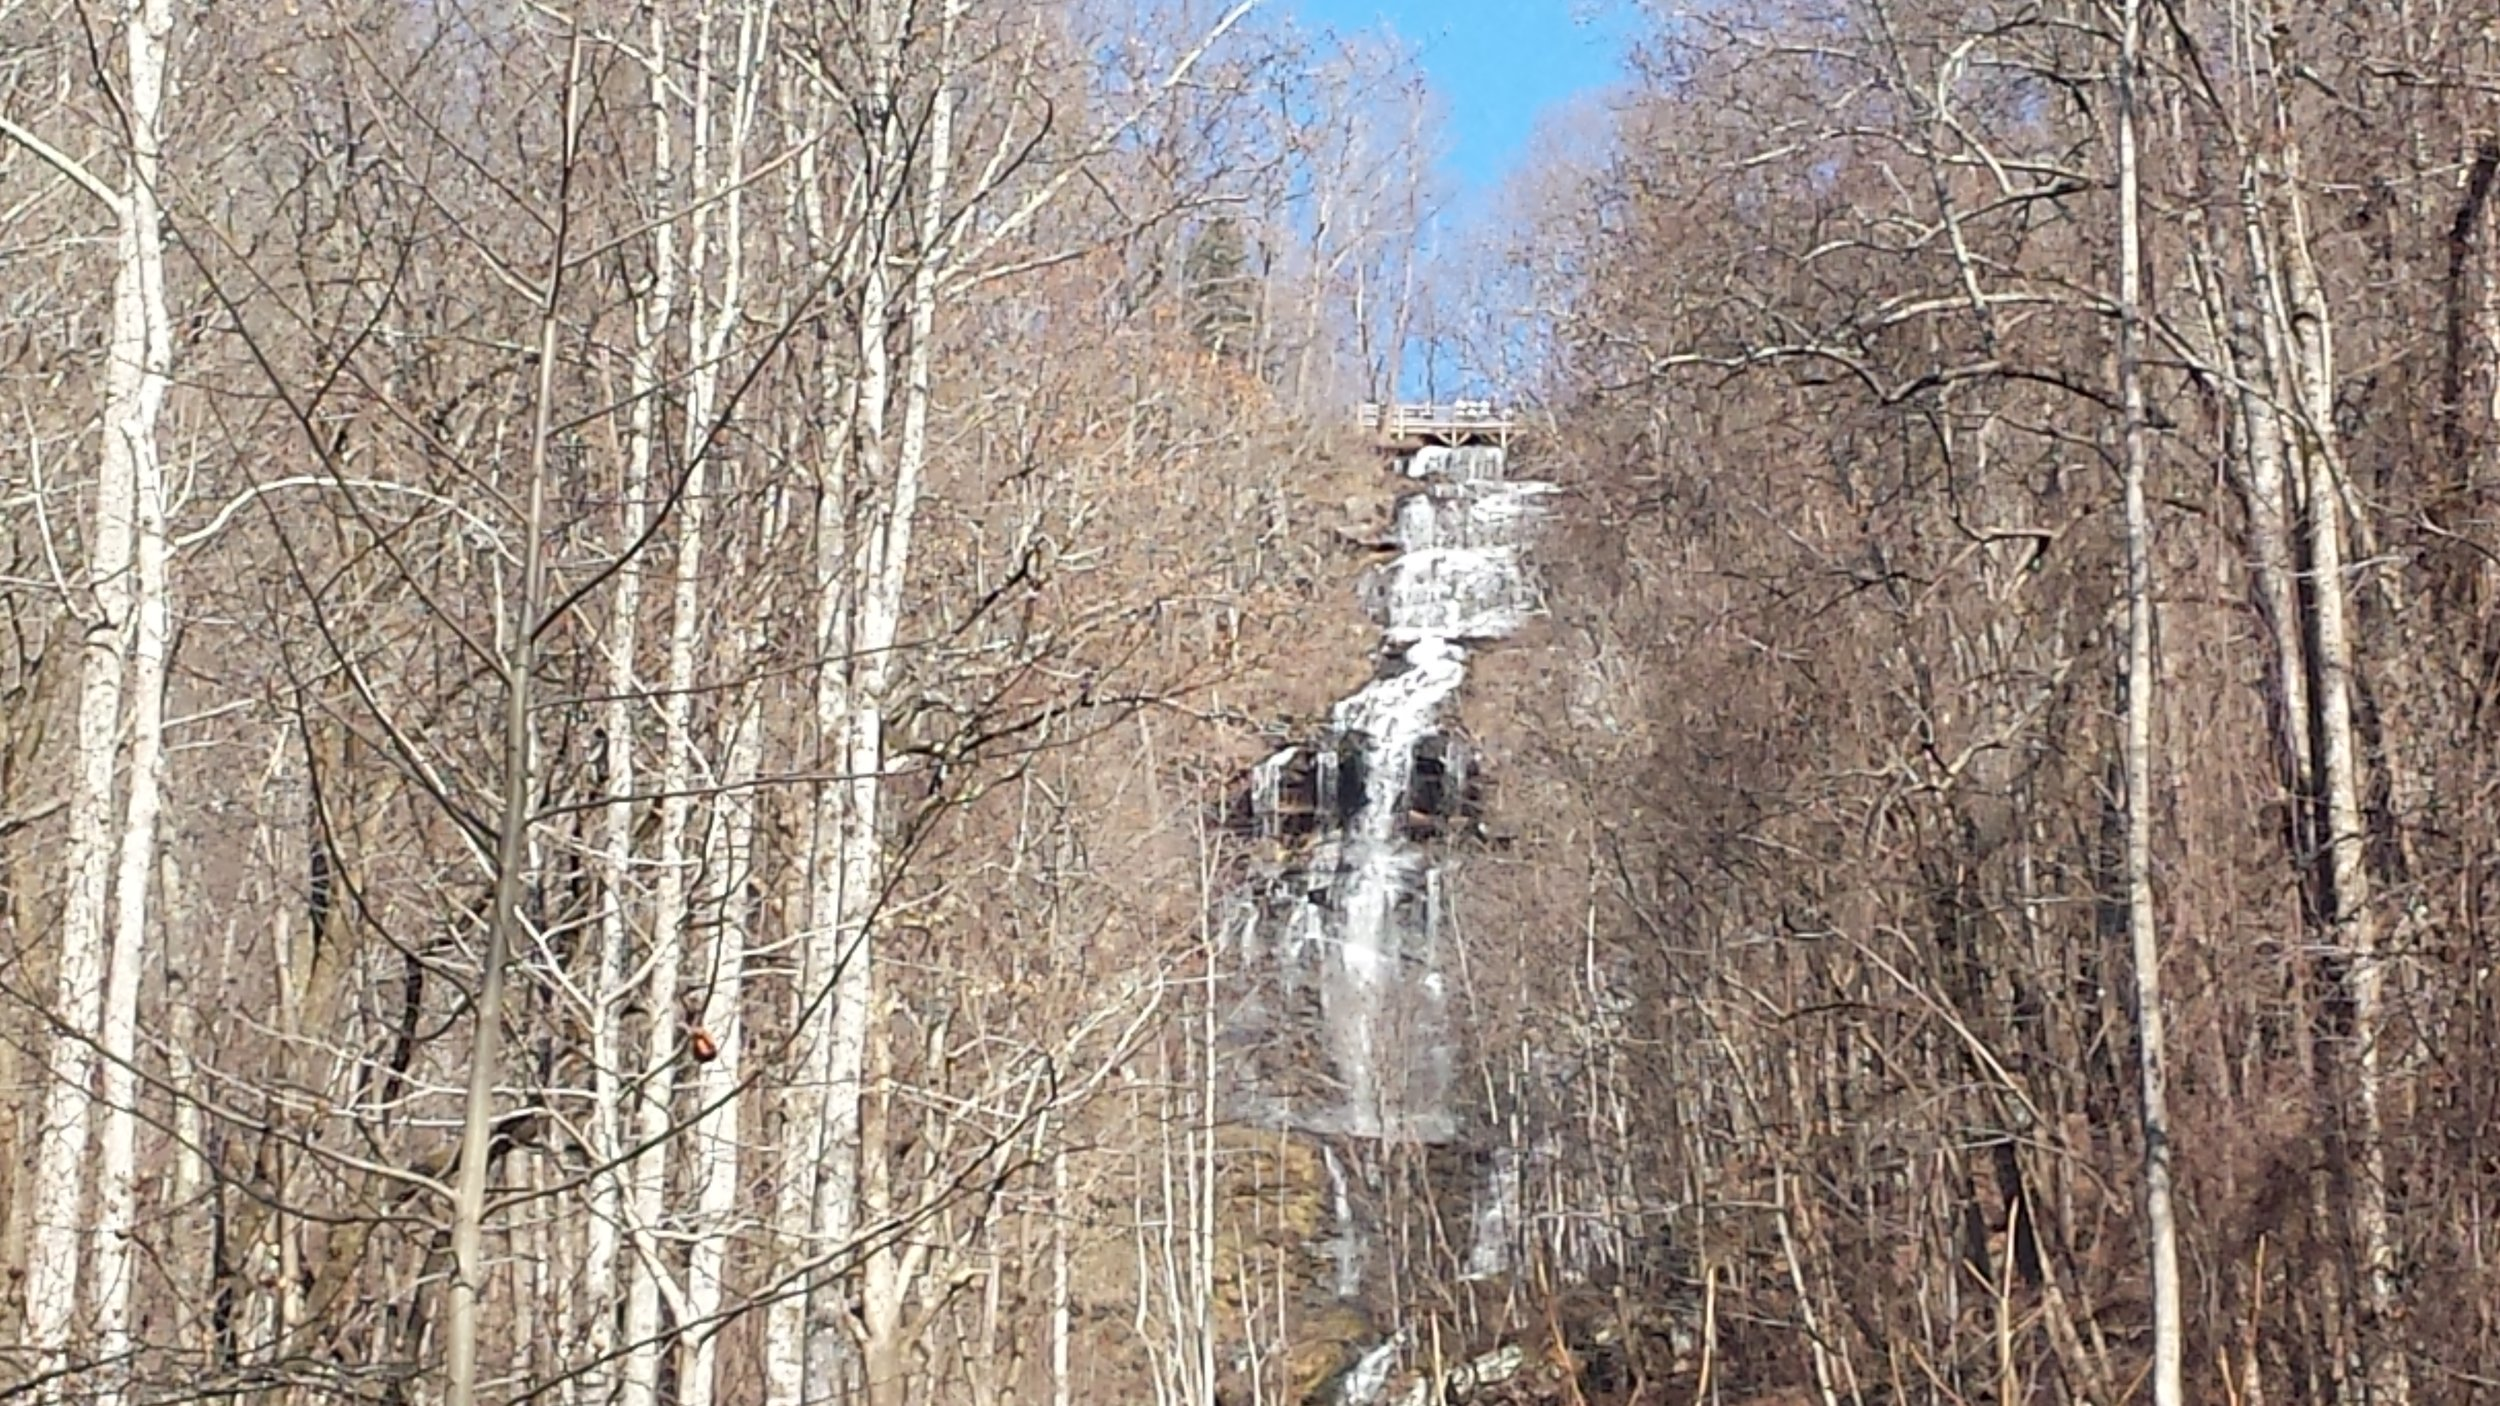 Amicalola Falls drops 700 feet to the valley below